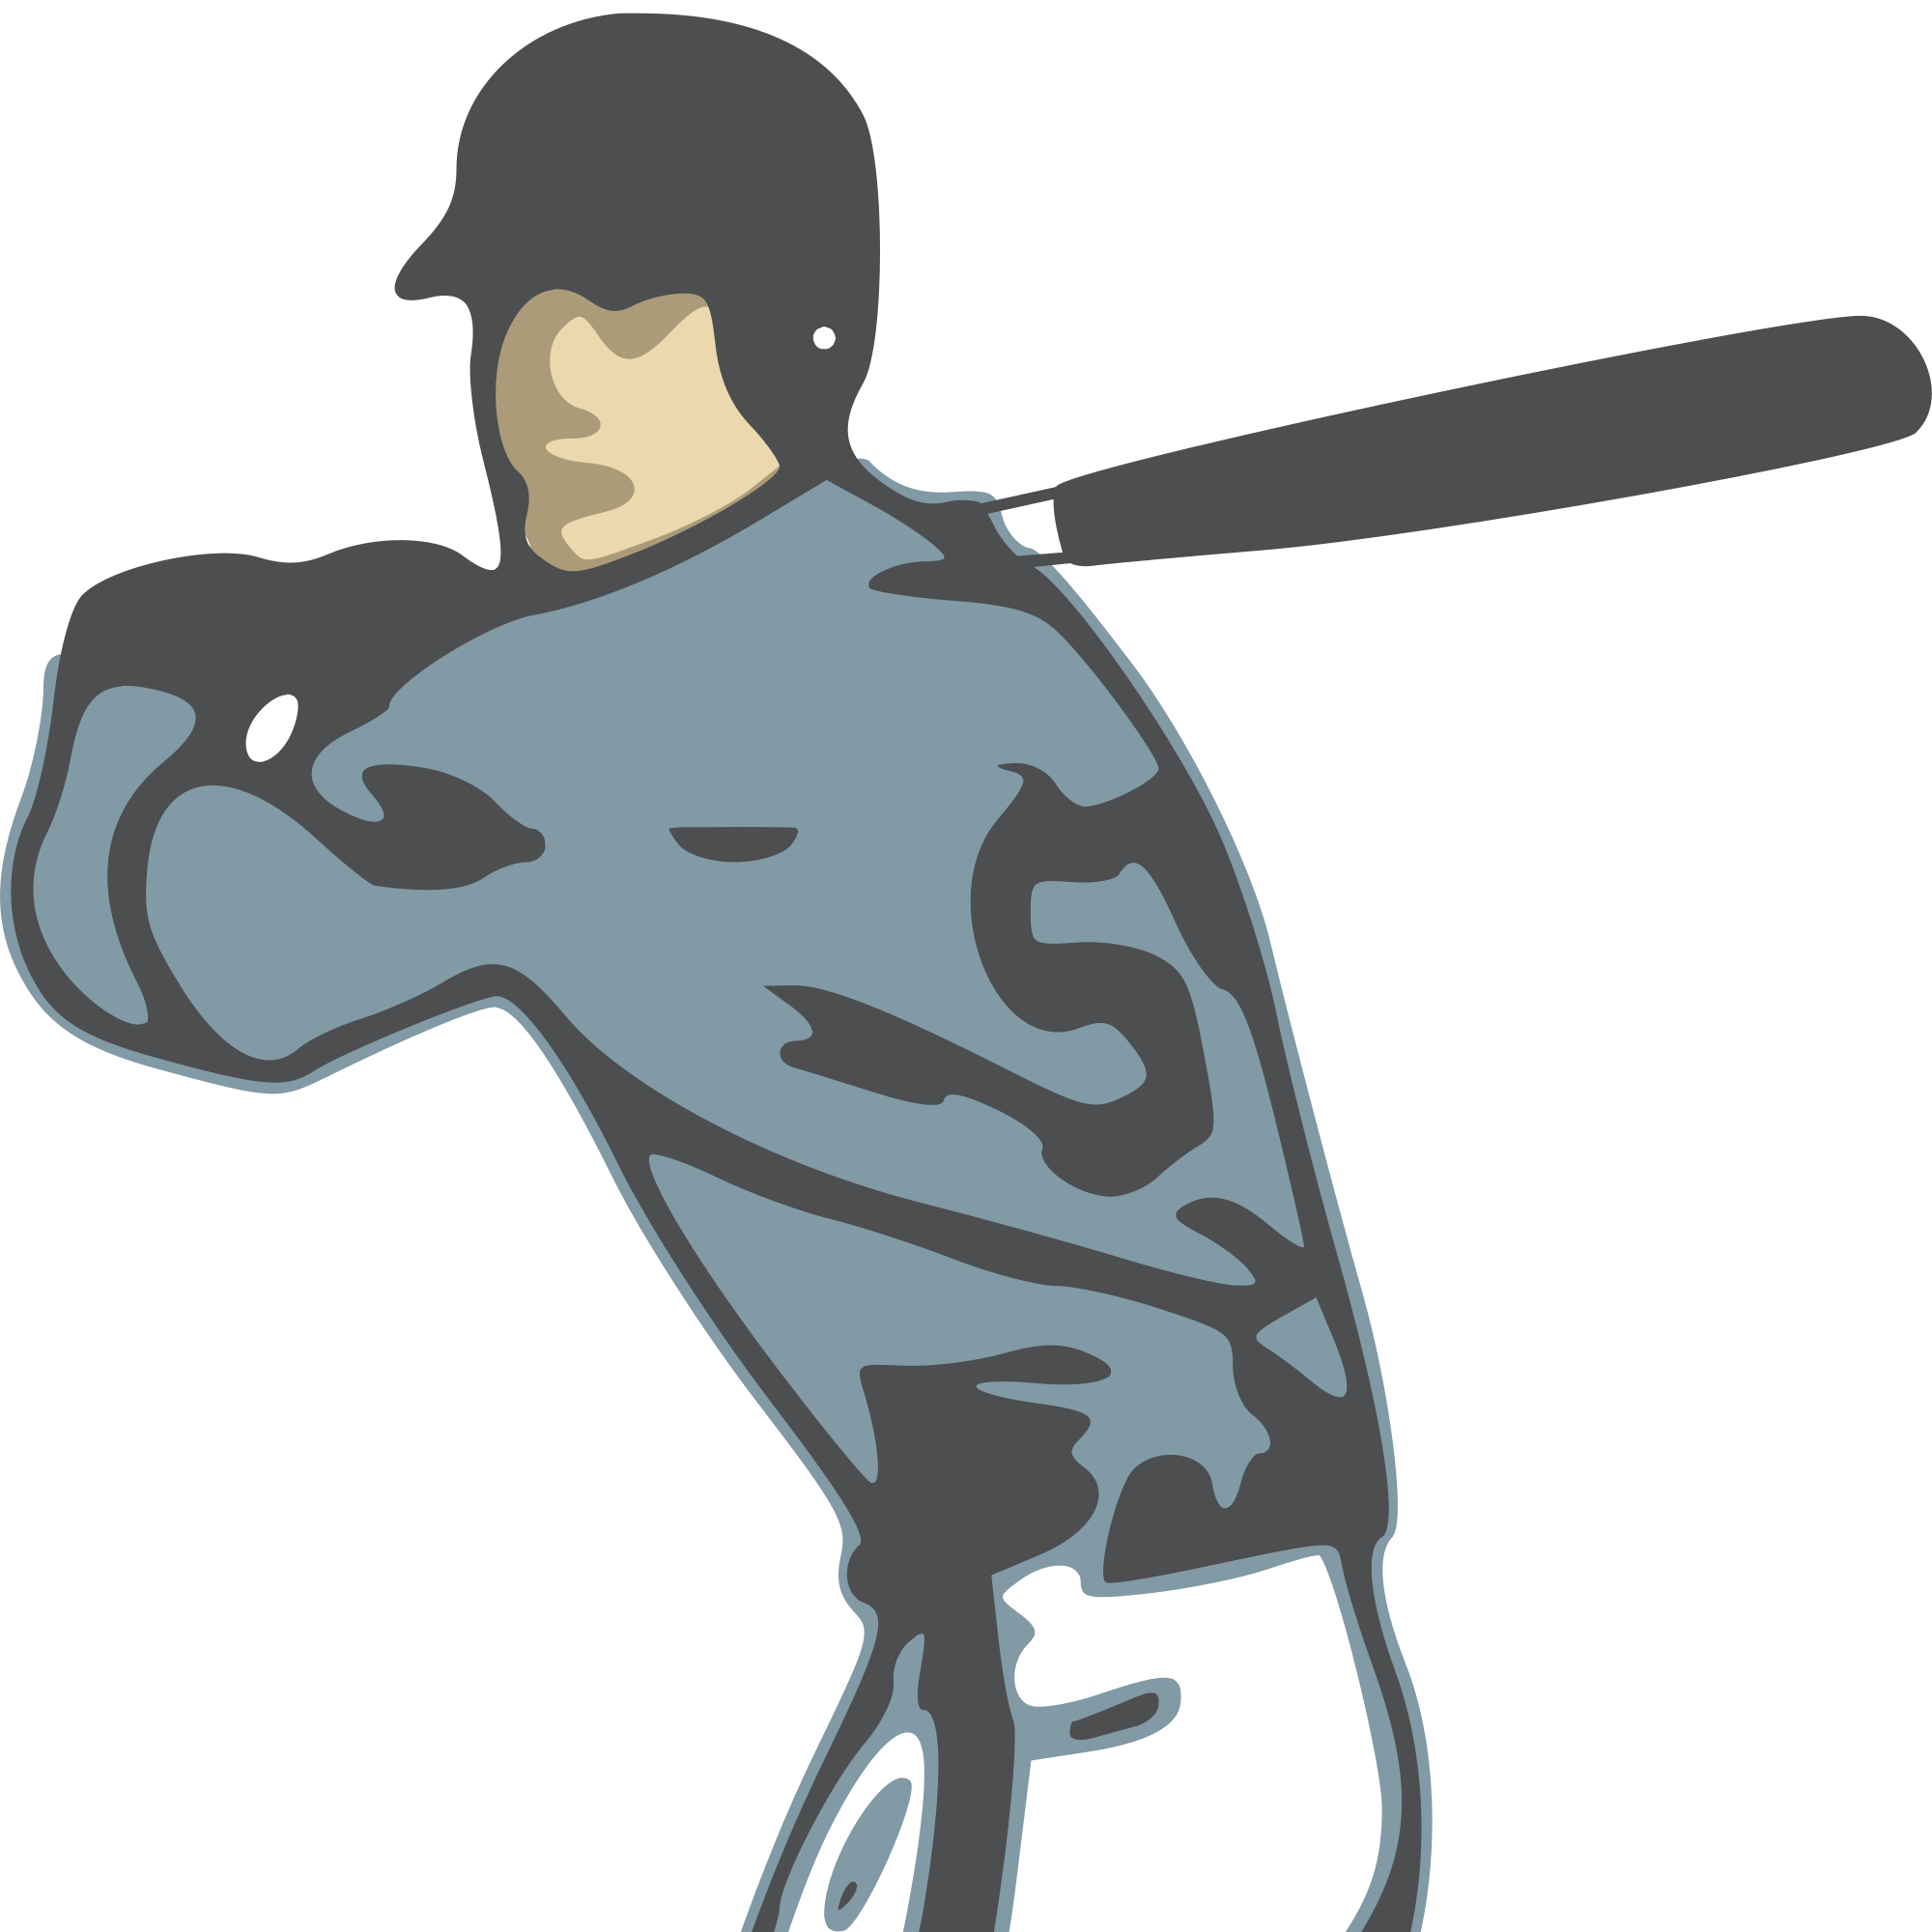 Batter at getdrawings com. Baseball related clipart